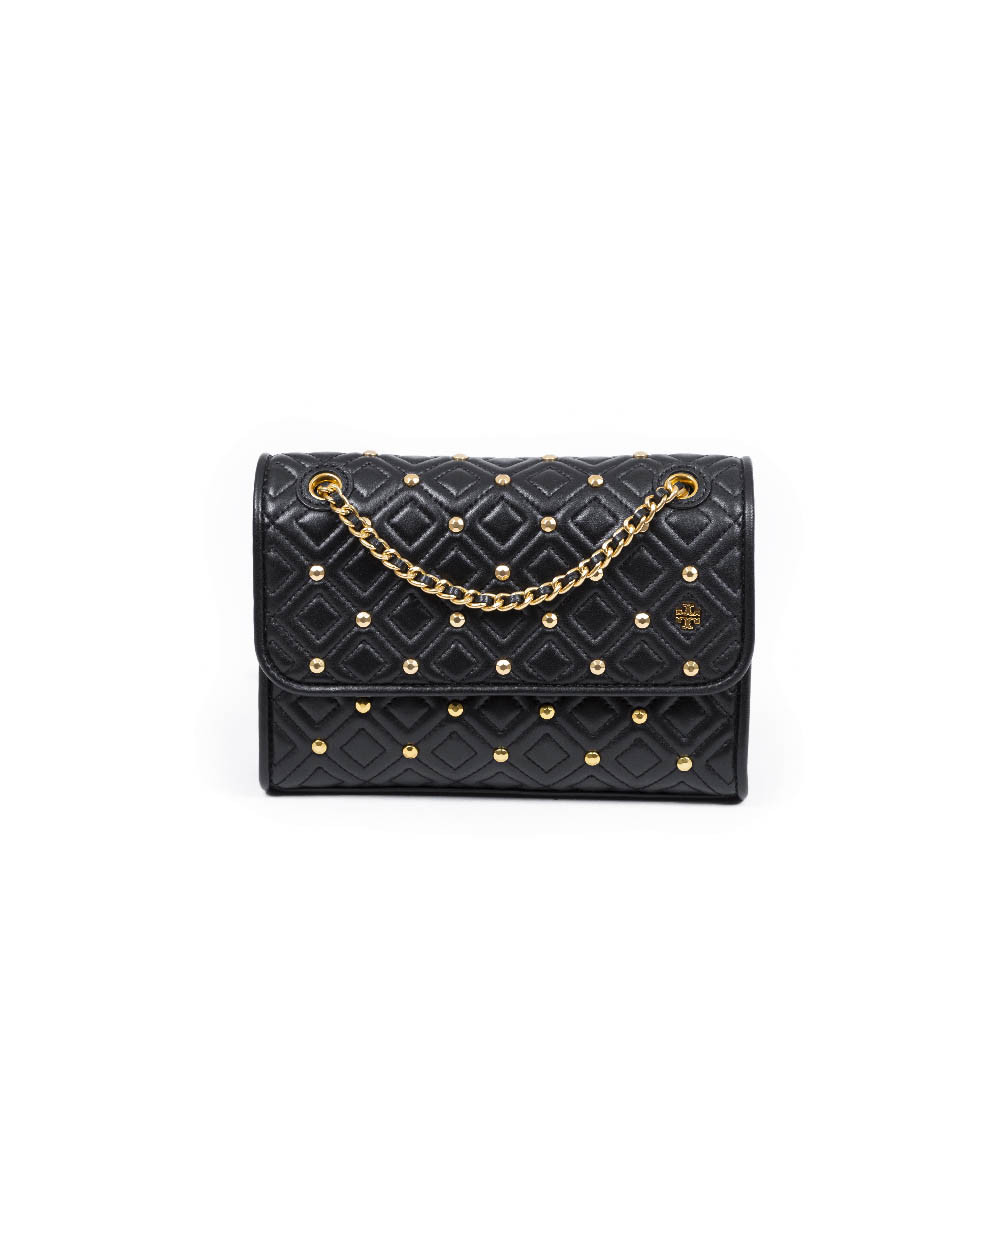 "Sac Tory Burch ""Fleming studd"" noir"